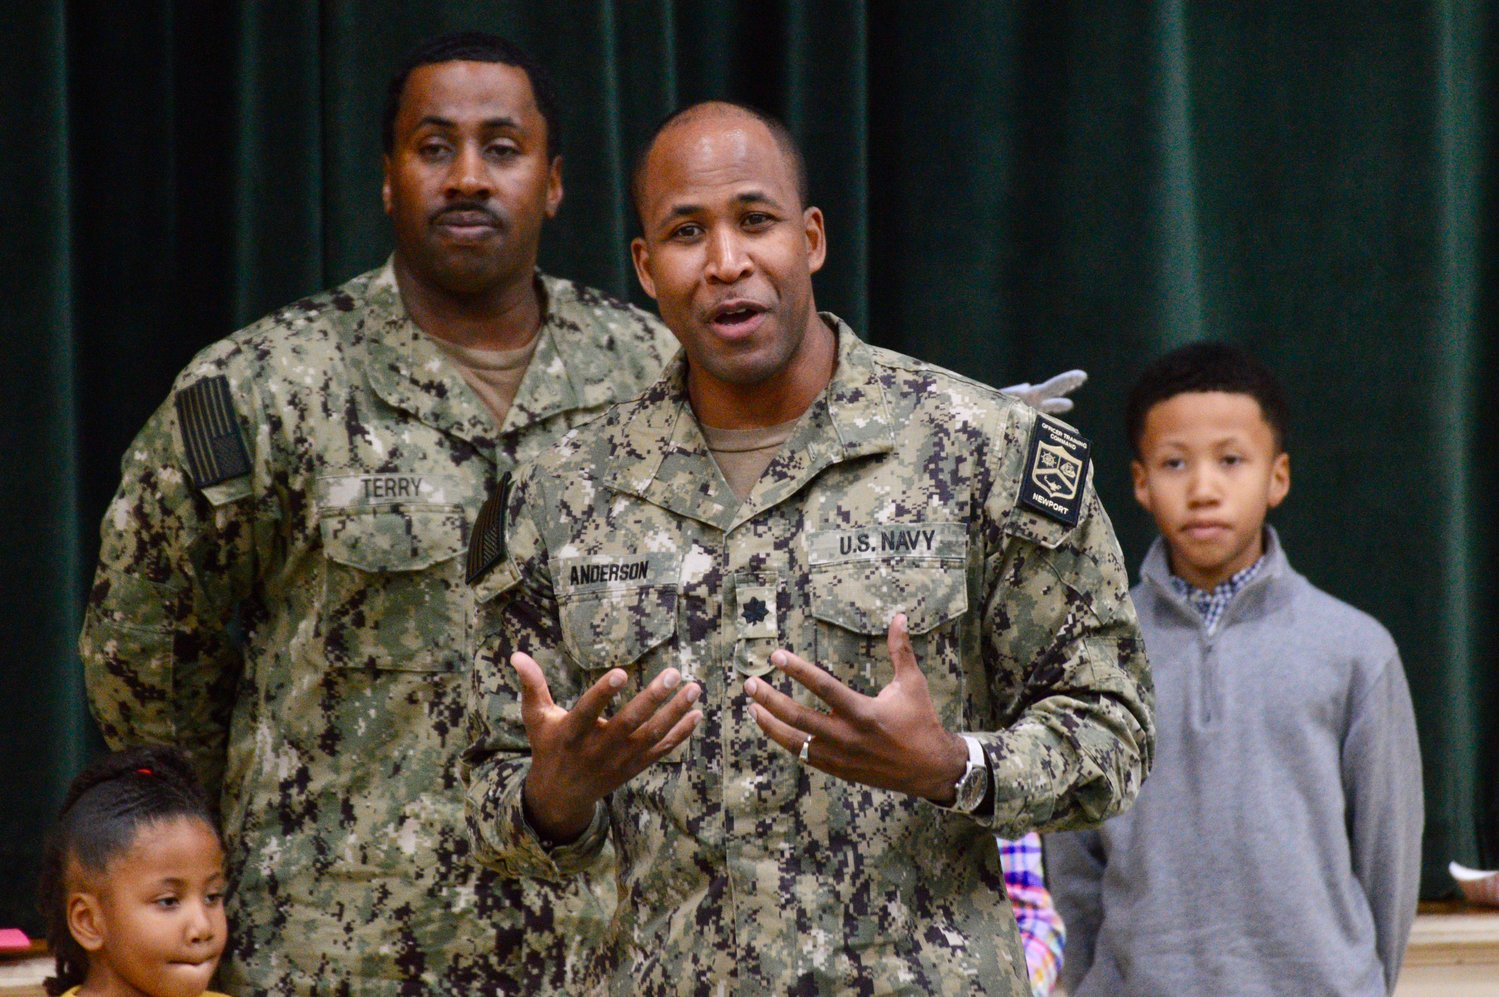 CJ Anderson of Naval Station Newport speaks to Pennfield students while Darrick Terry looks on with this children, Ava and Jadon, both students at the school.